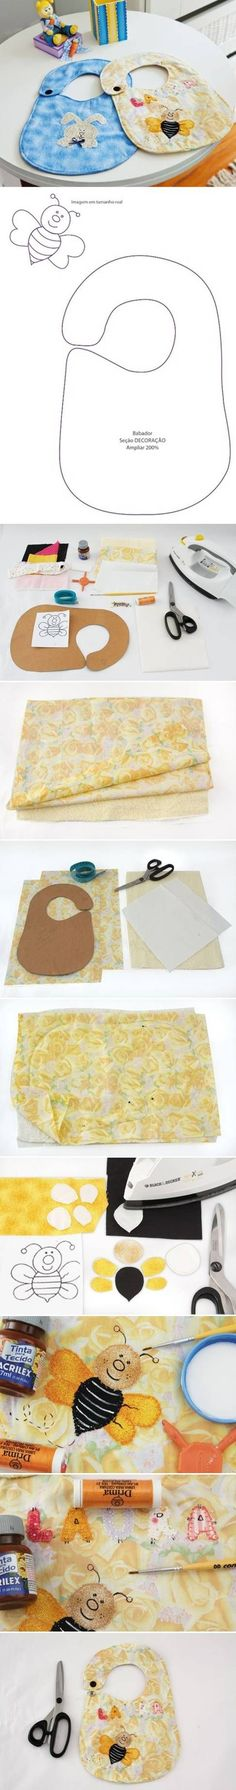 DIY Baby Bibs DIY Projects | UsefulDIY.com